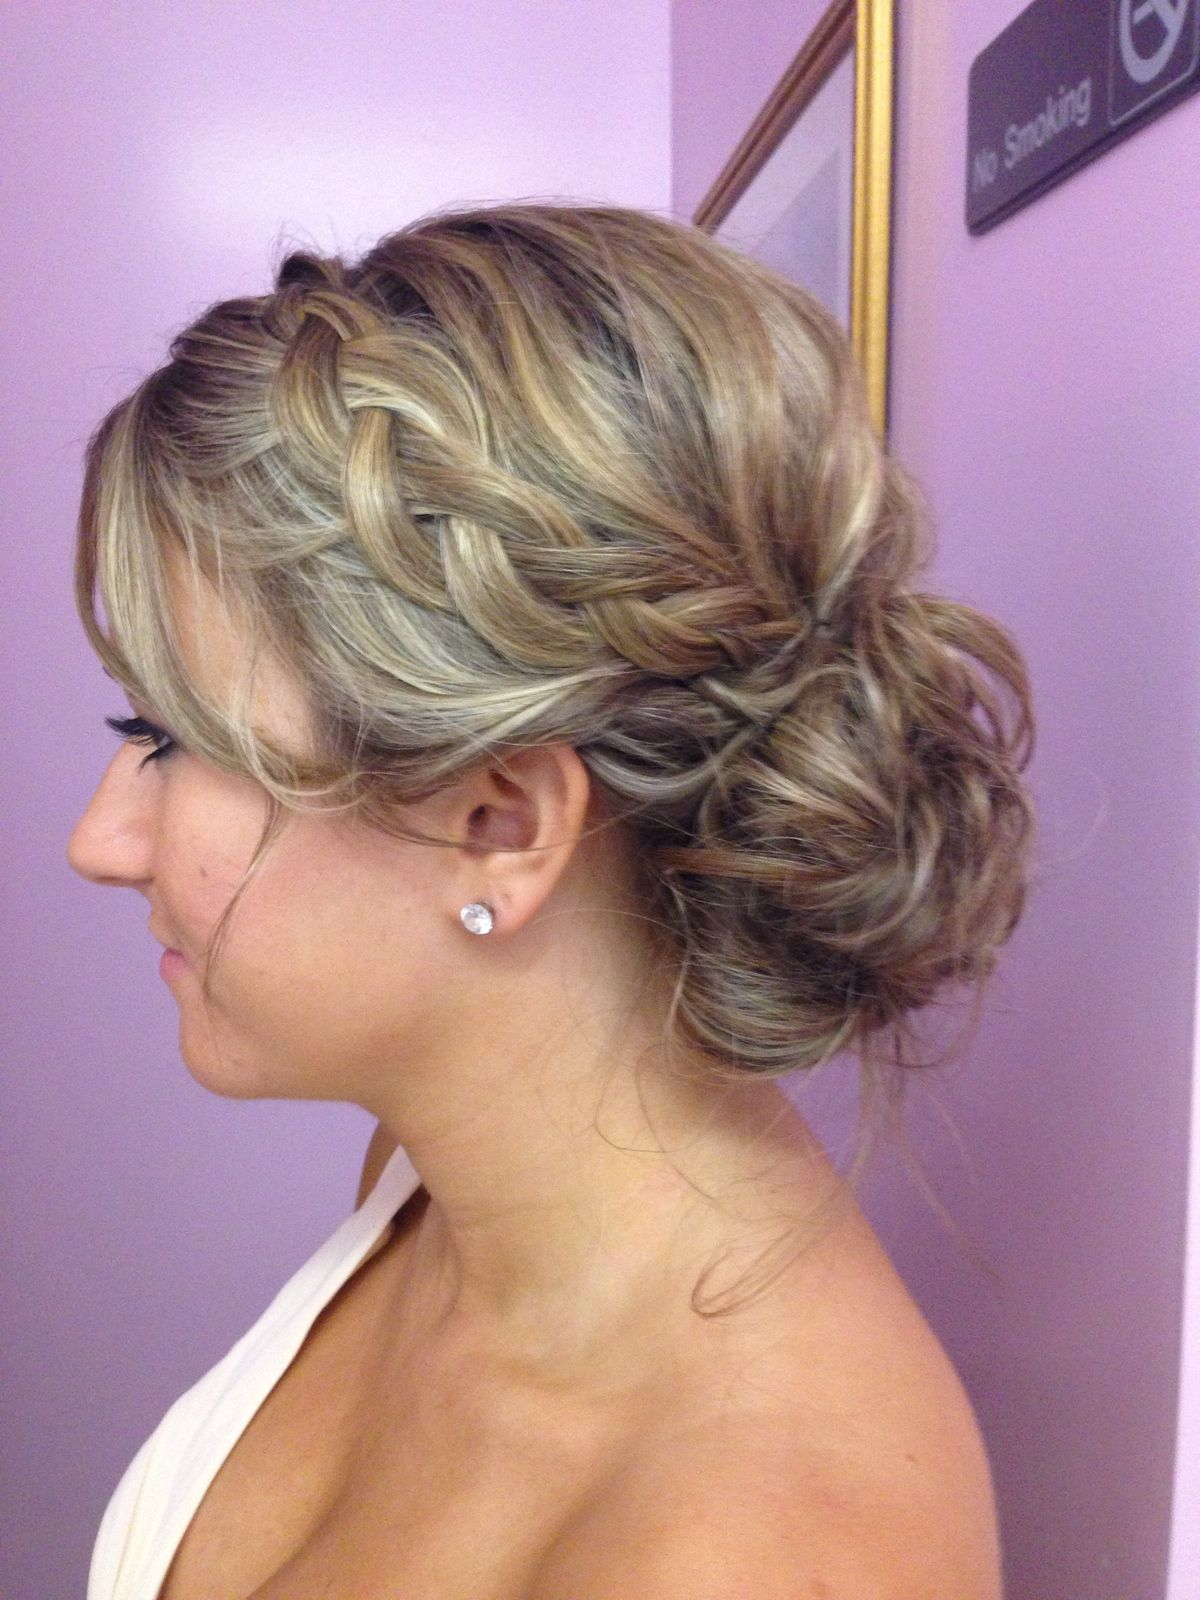 Hairstyle prom styles pinterest prom hairstyles prom and